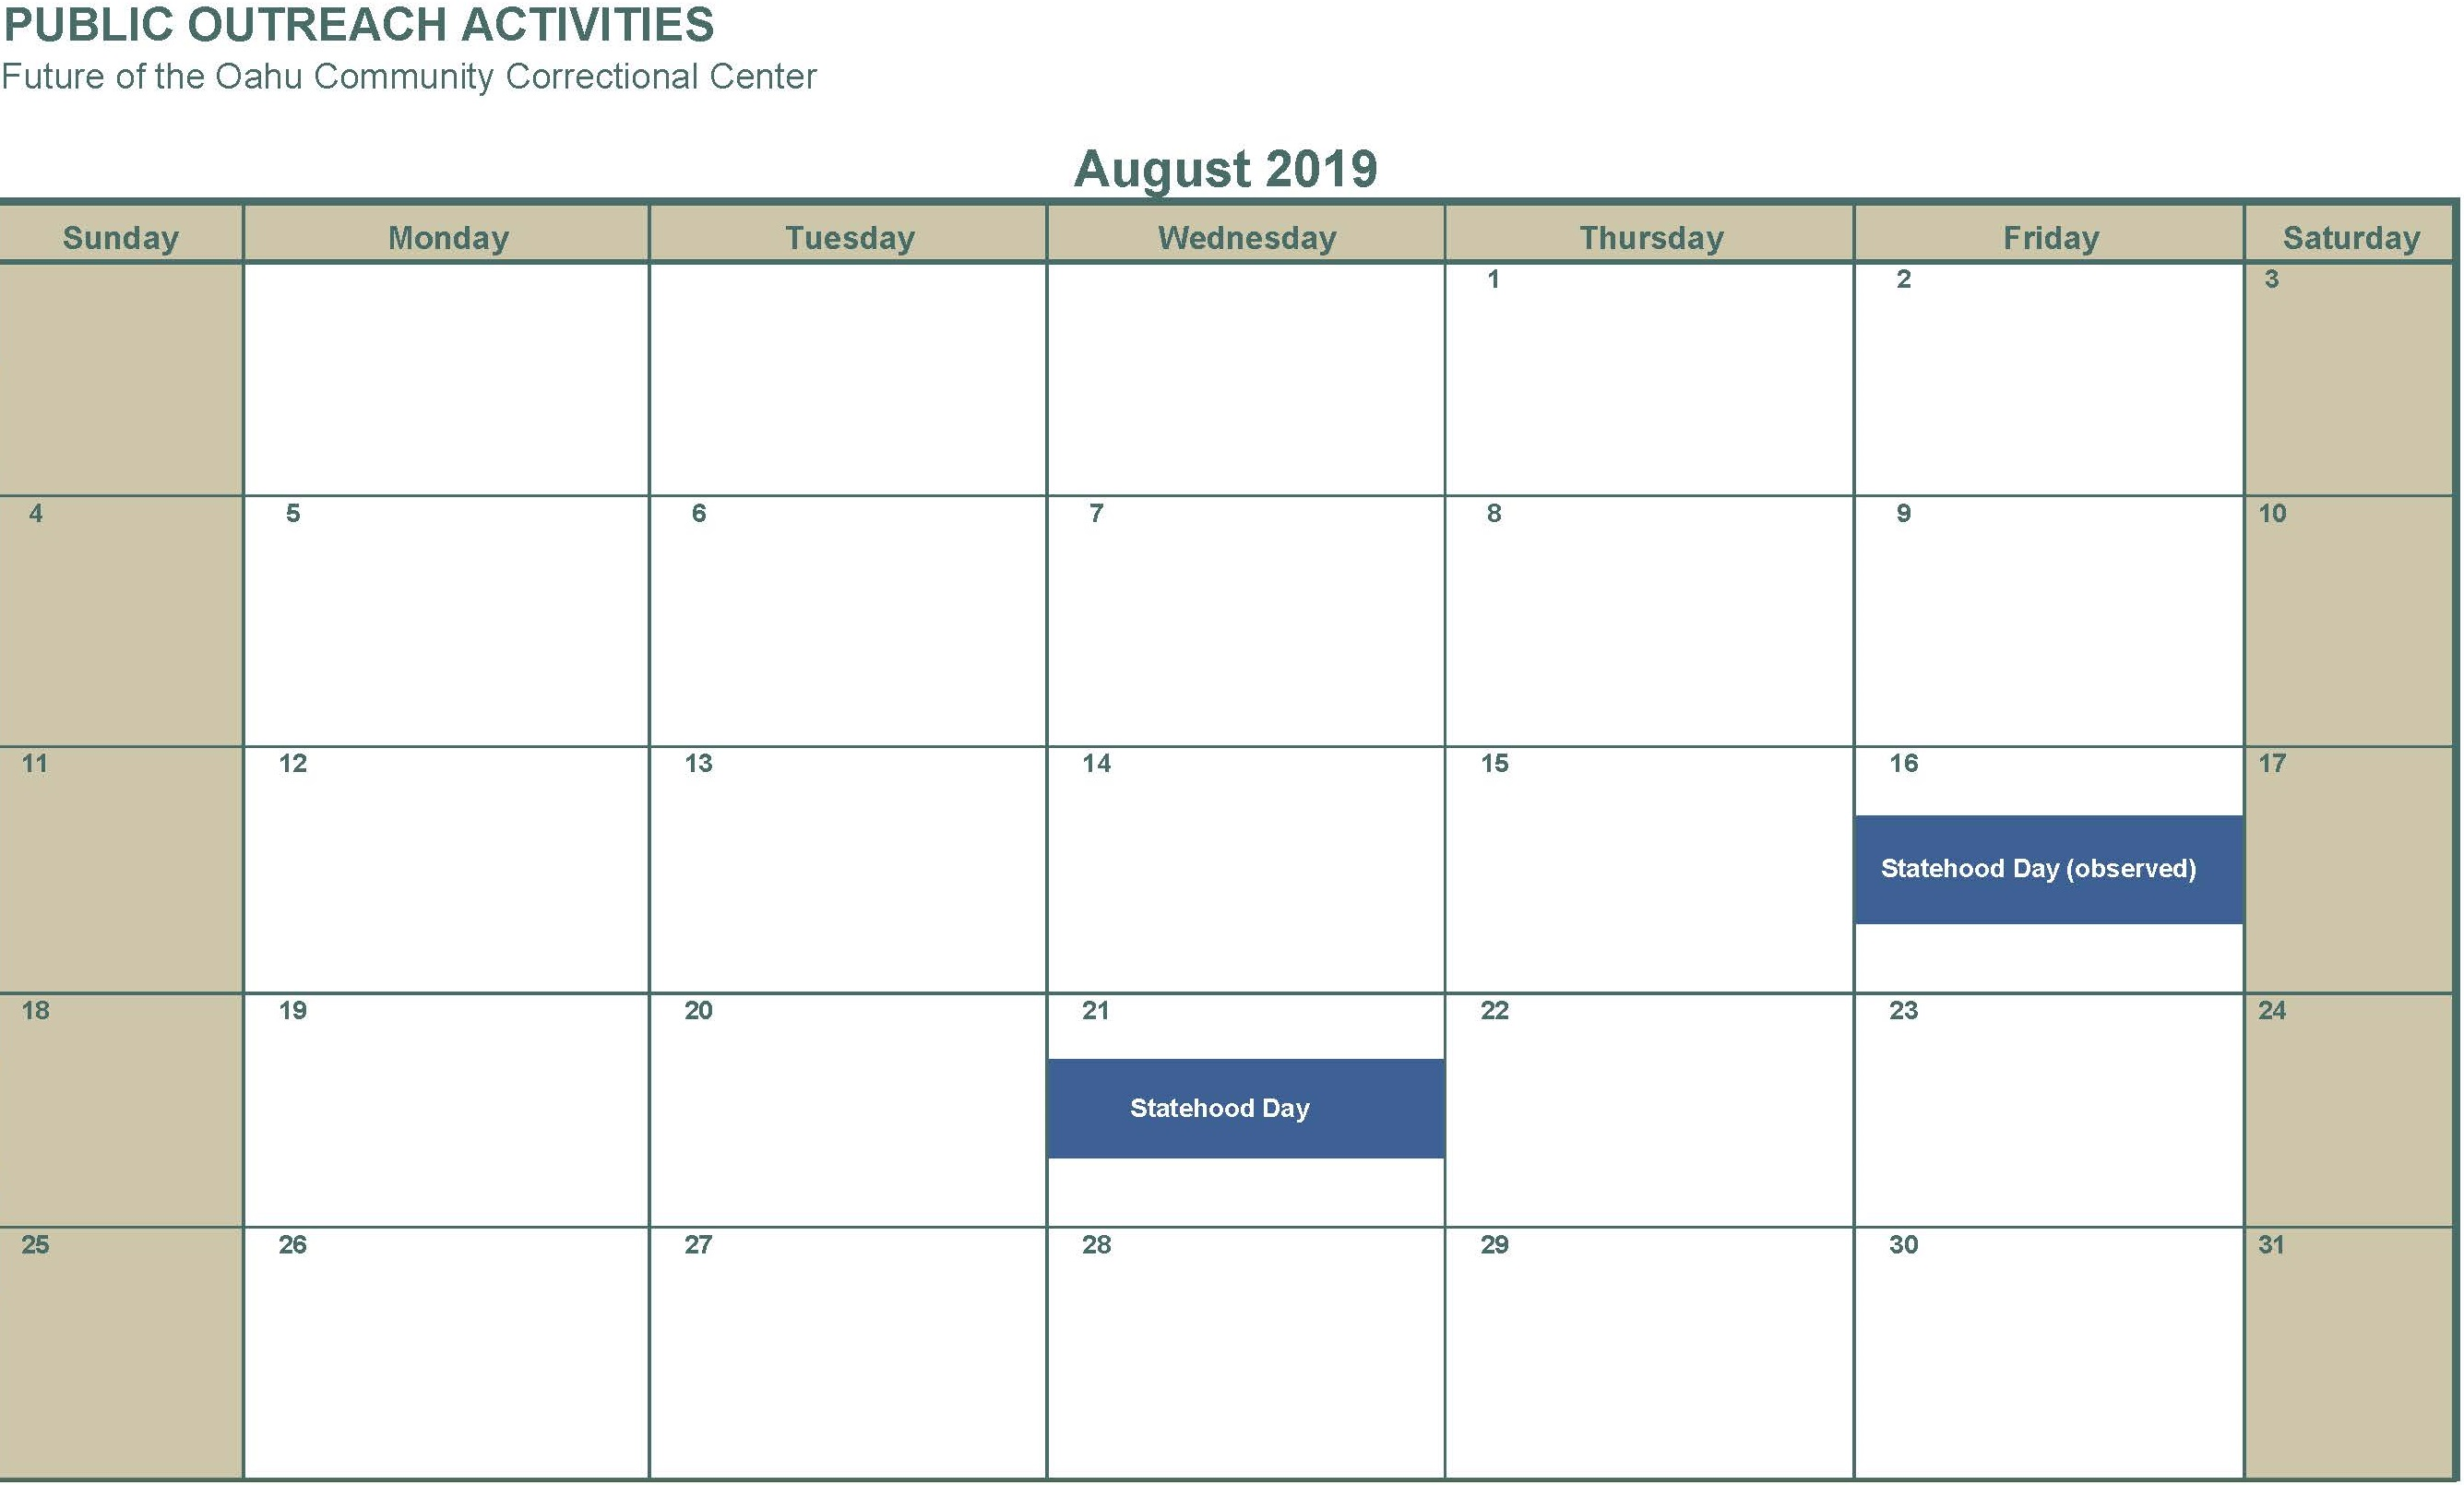 August 2019 no activities listed